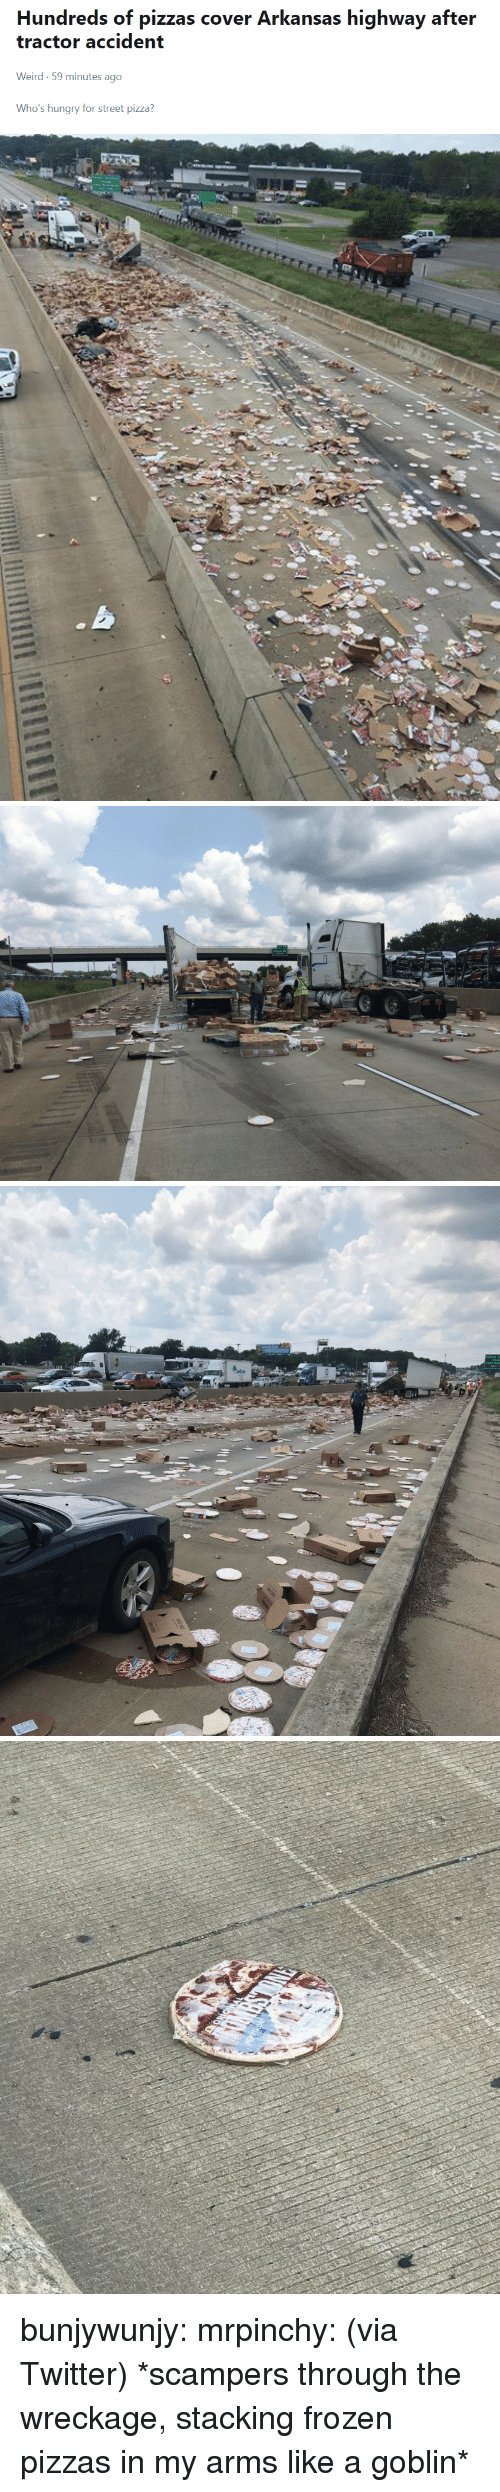 Frozen, Hungry, and Pizza: Hundreds of pizzas cover Arkansas highway after  tractor accident  Weird-59 minutes ago  Who's hungry for street pizza? bunjywunjy: mrpinchy: (via Twitter)  *scampers through the wreckage, stacking frozen pizzas in my arms like a goblin*